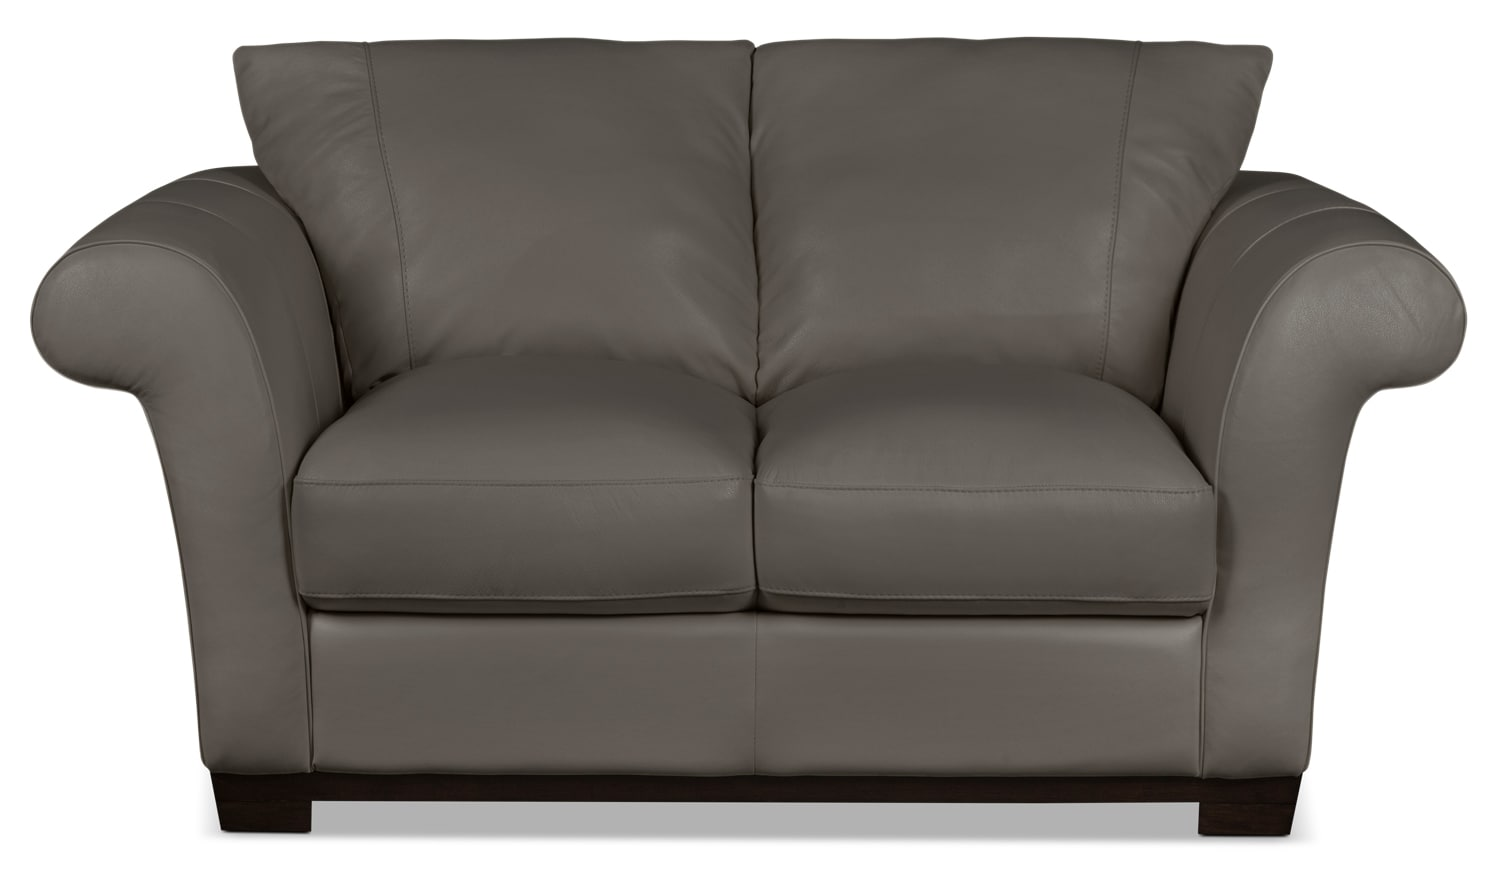 Living Room Furniture - Layla Genuine Leather Loveseat – Taupe